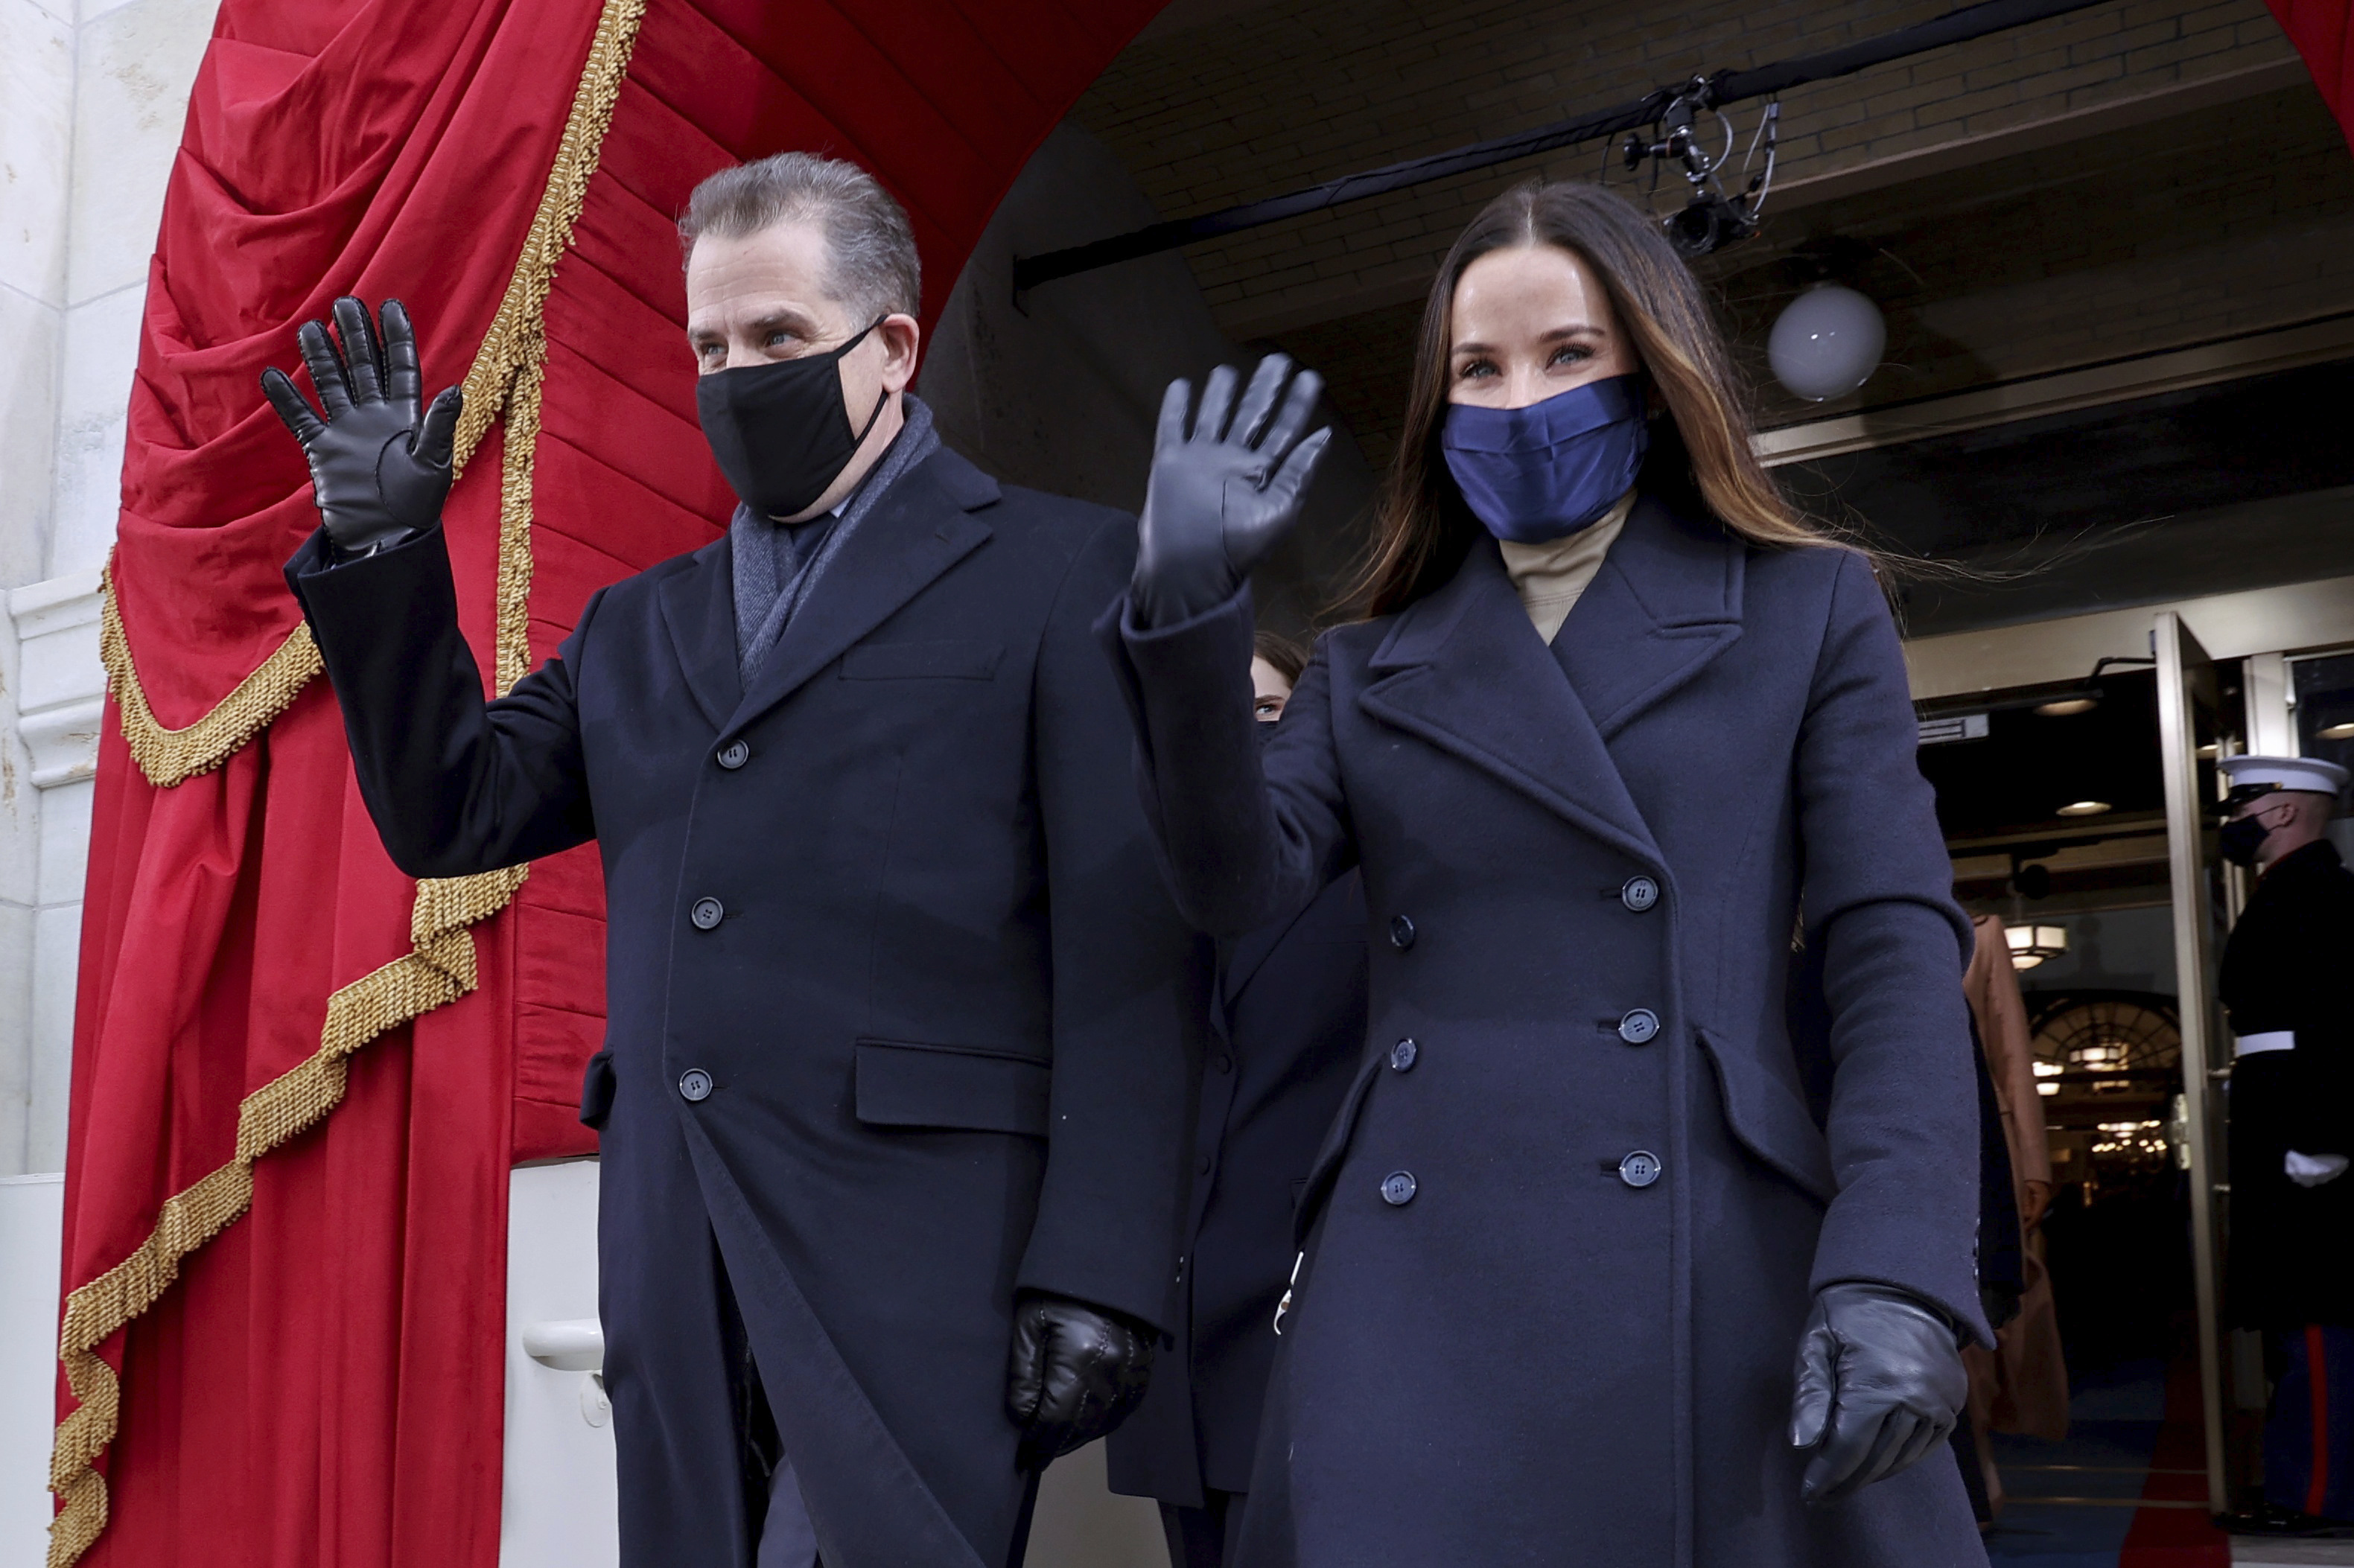 The son and daughter of President-elect Joe Biden, Hunter and Ashley, wave as they arrive to attend the 59th Presidential Inauguration.